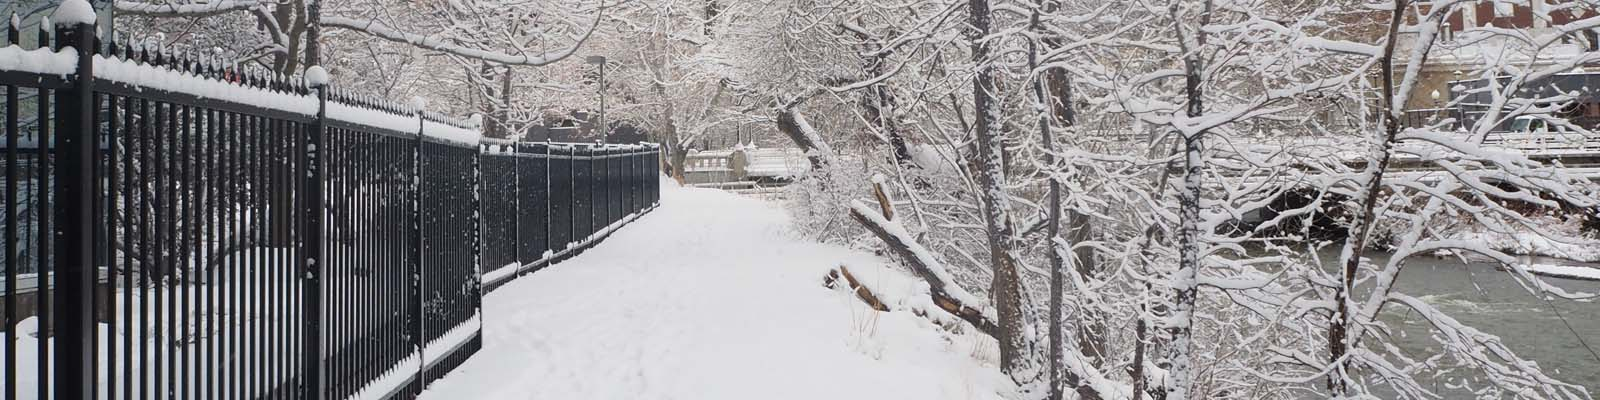 This is an image a snowy path in Reno. ASTA-USA provides professional translation services in this city.